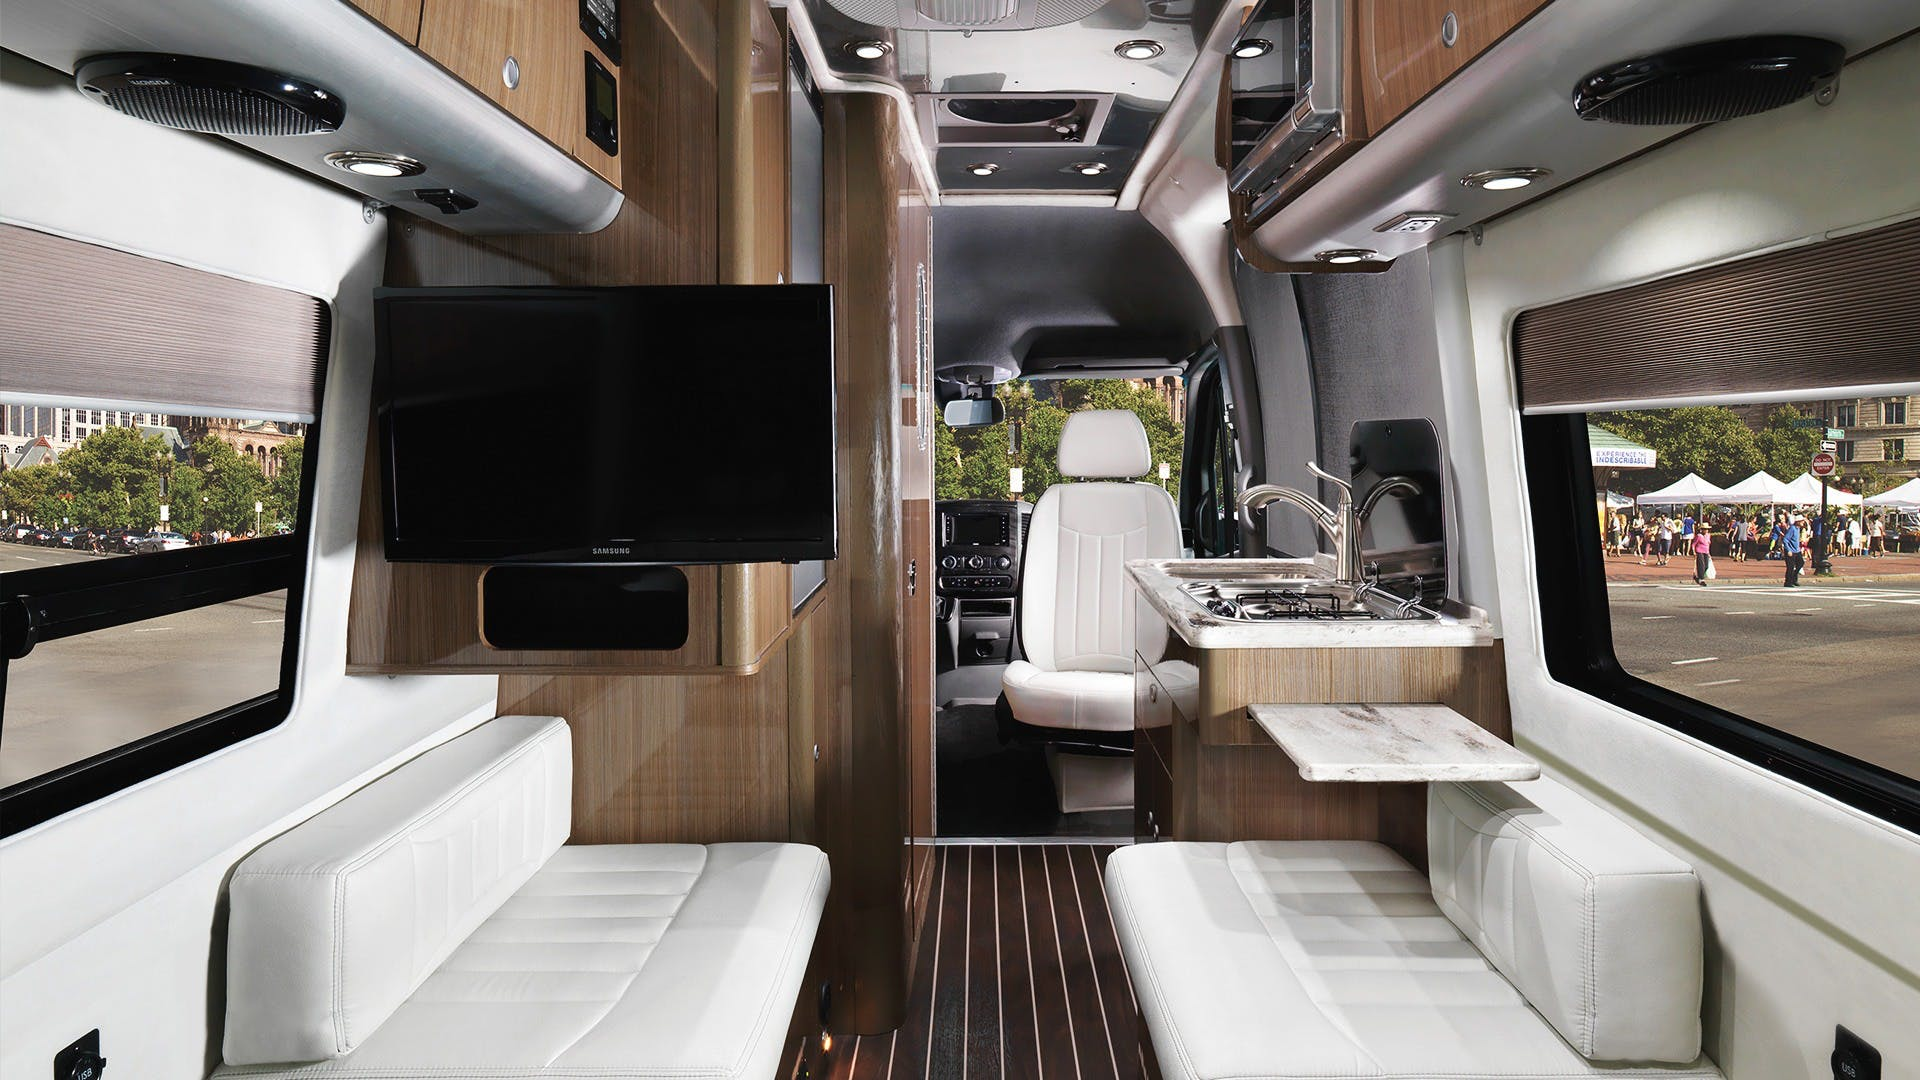 Airstream Interstate Nineteen Mercedes Benz interior white leather